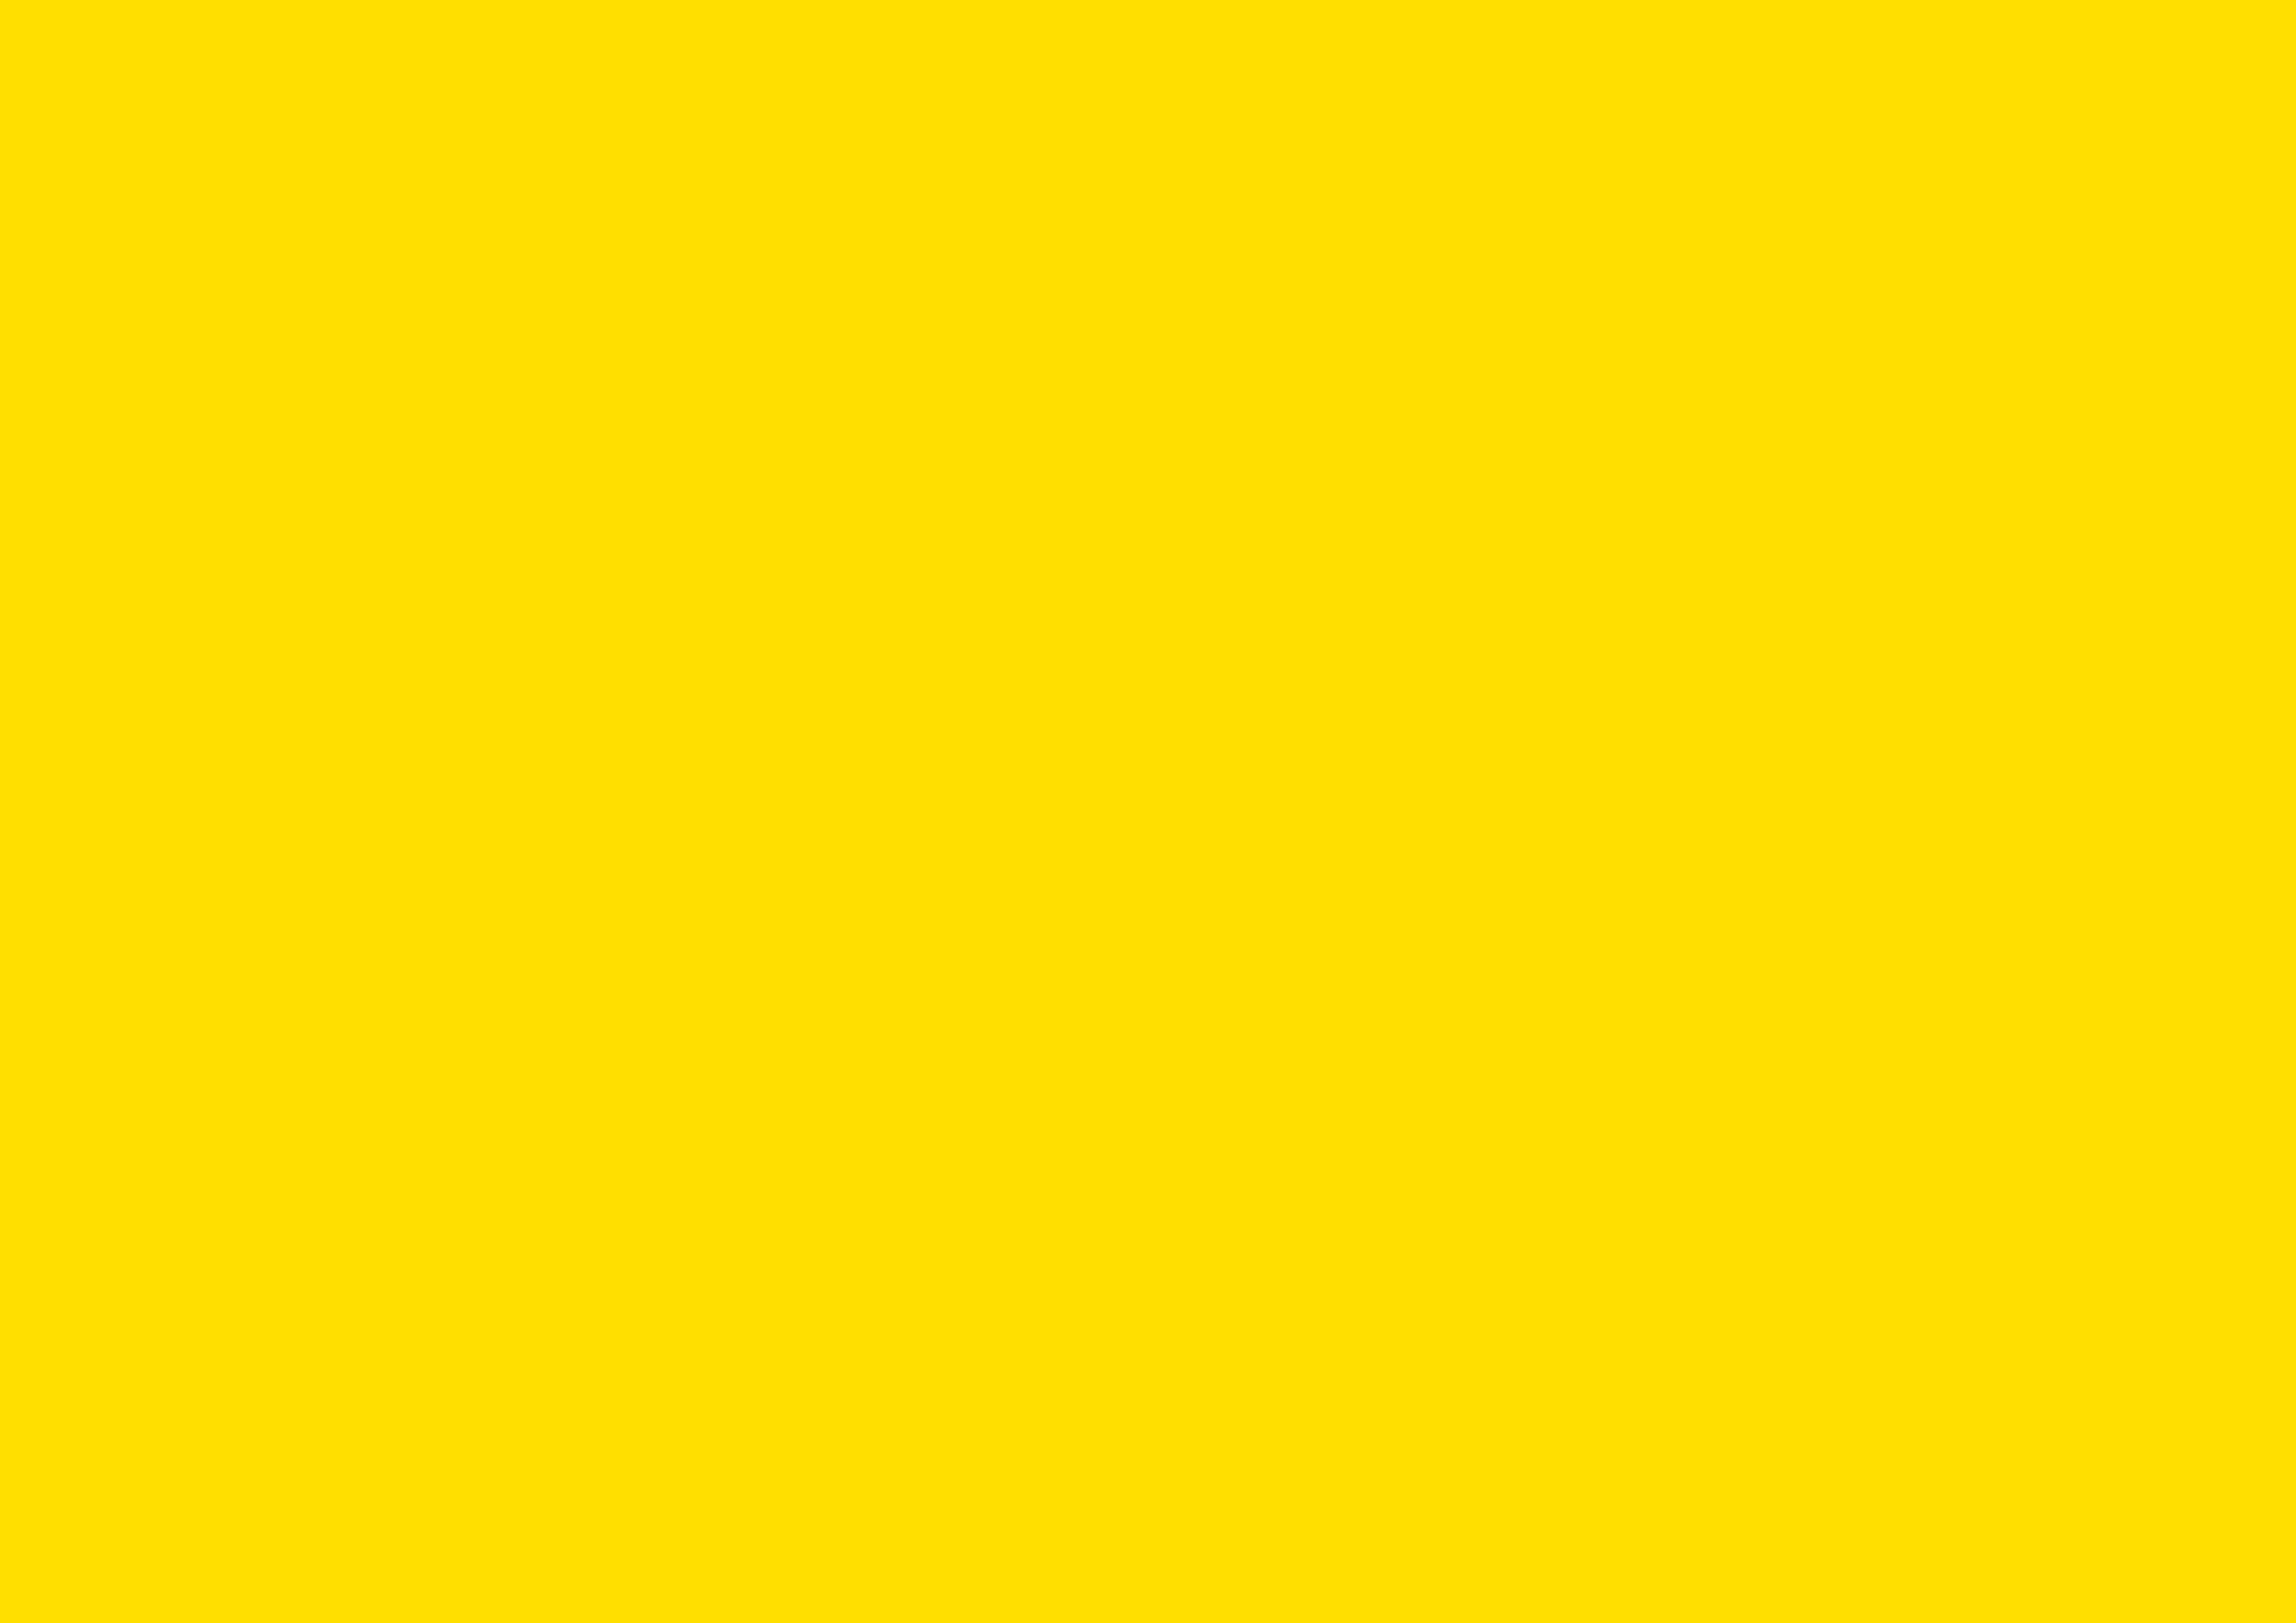 3508x2480 Golden Yellow Solid Color Background